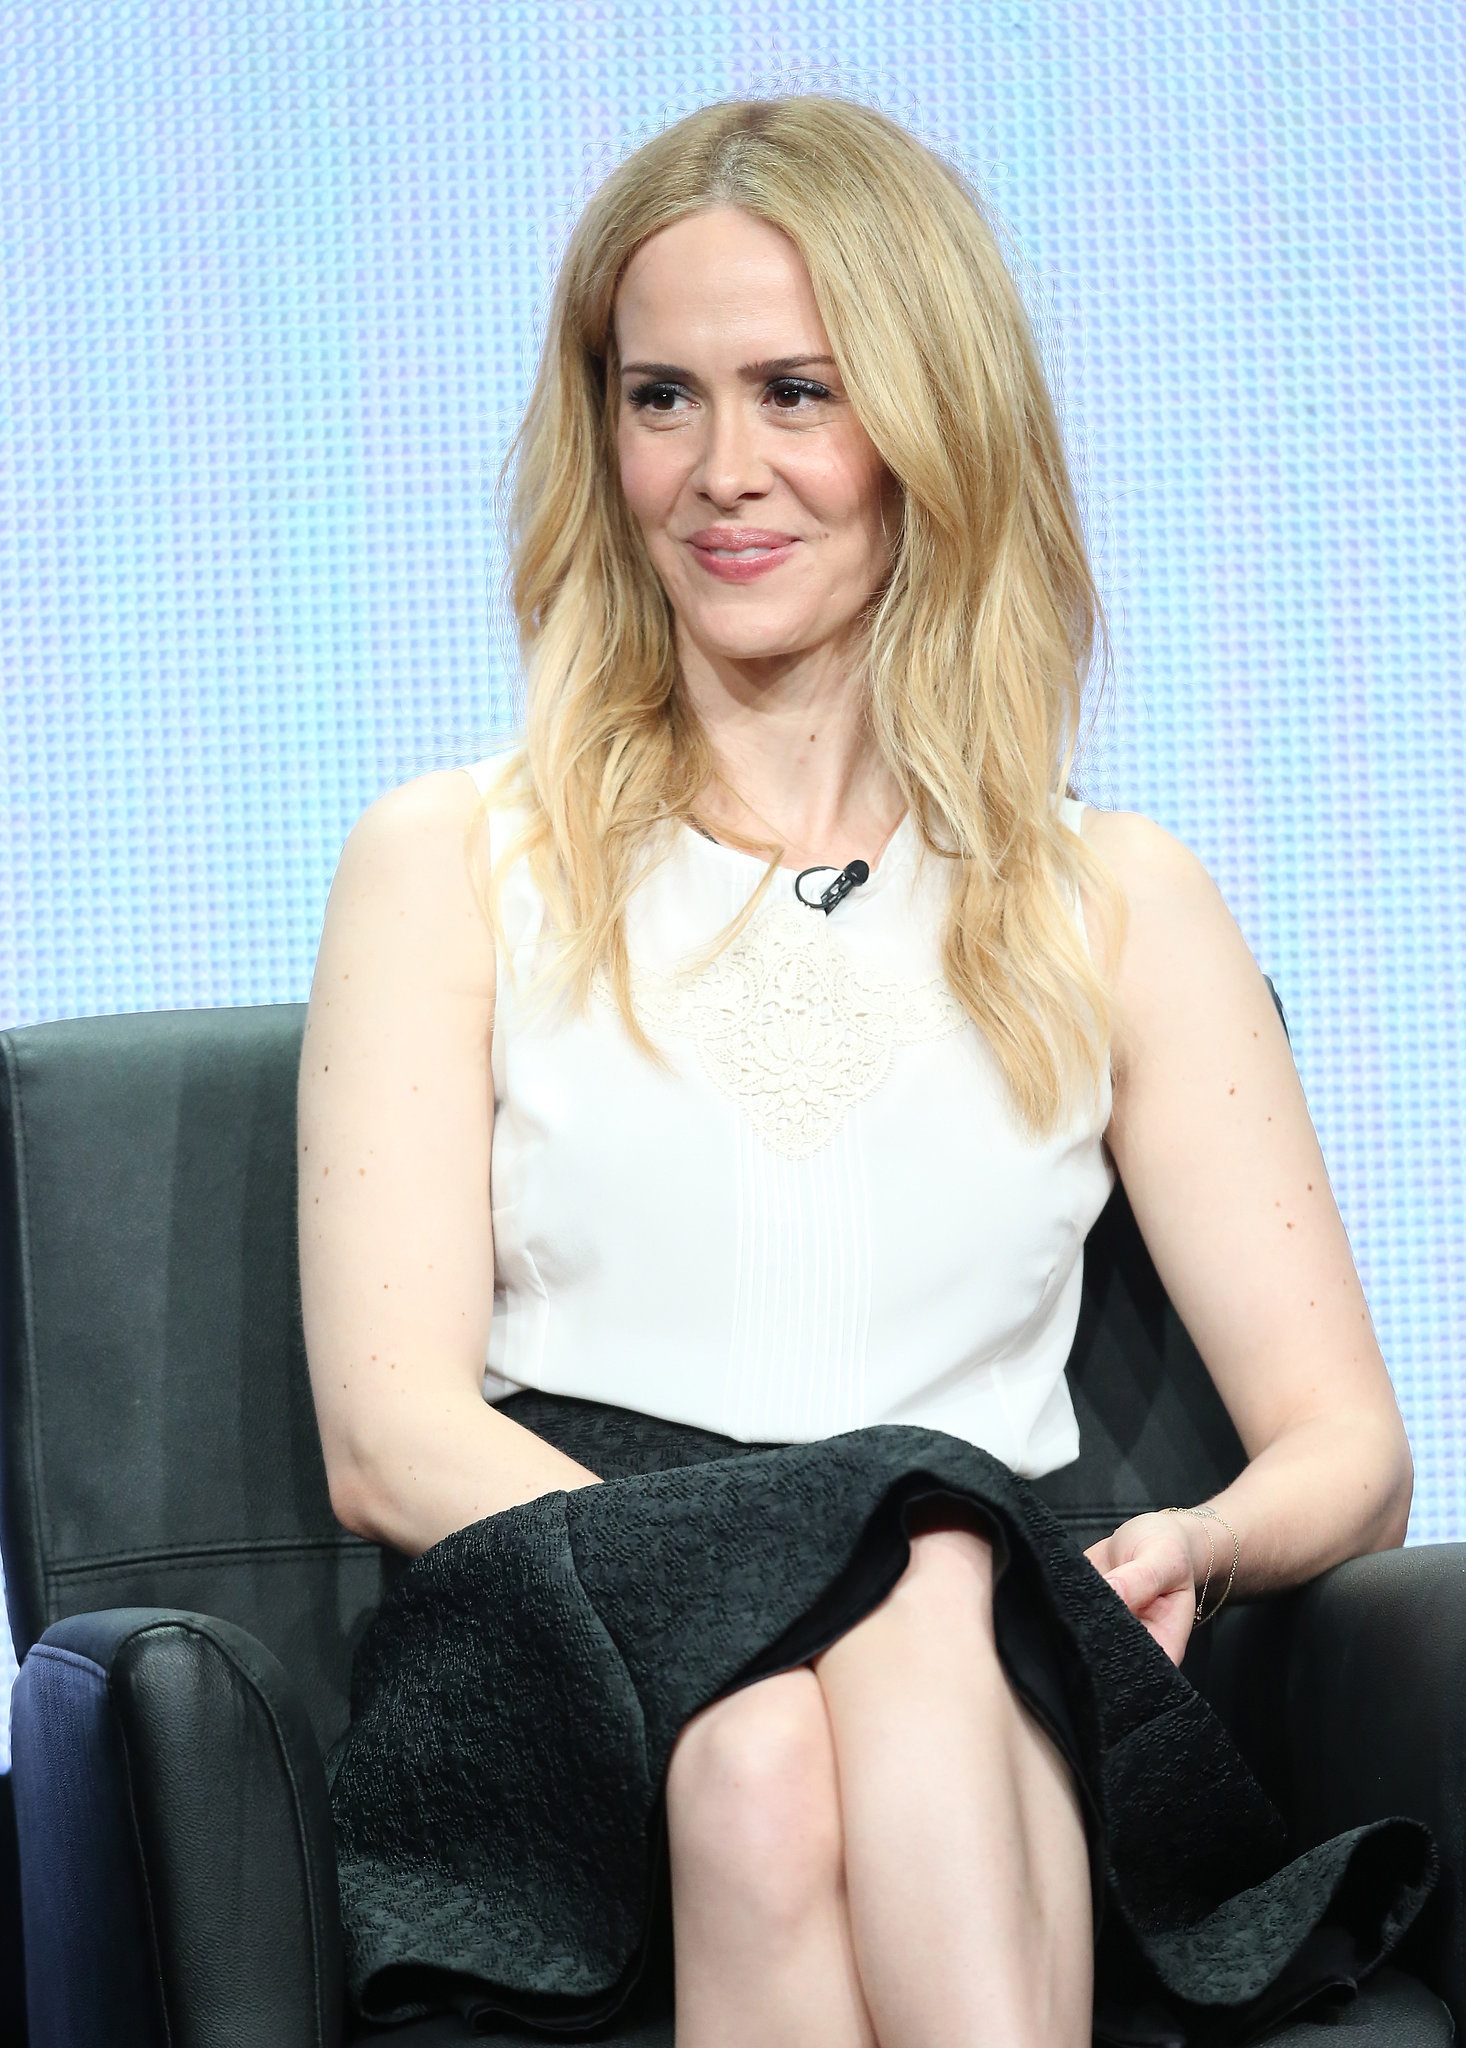 Sarah Paulson shared spoilers for the upcoming season of American Horror Story: Coven.